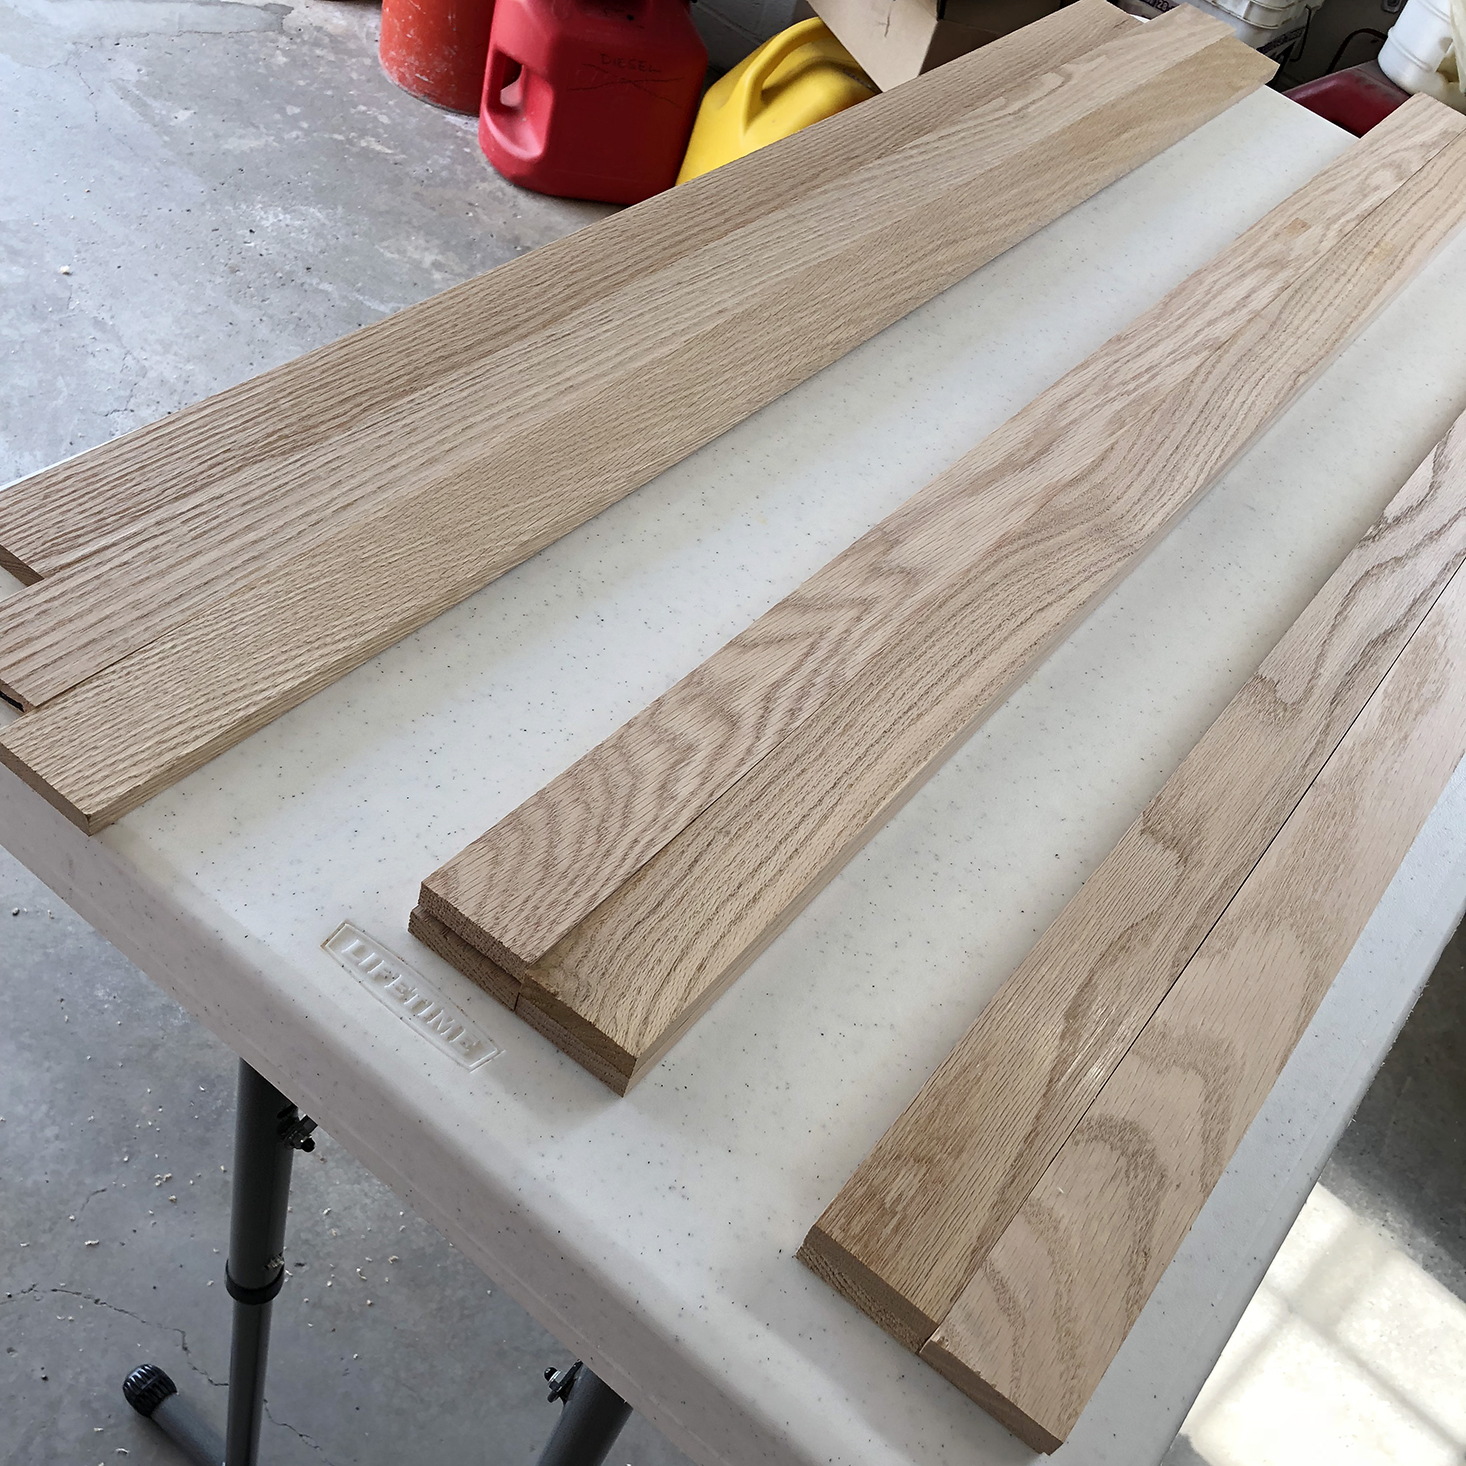 Grouping oak planks by grain